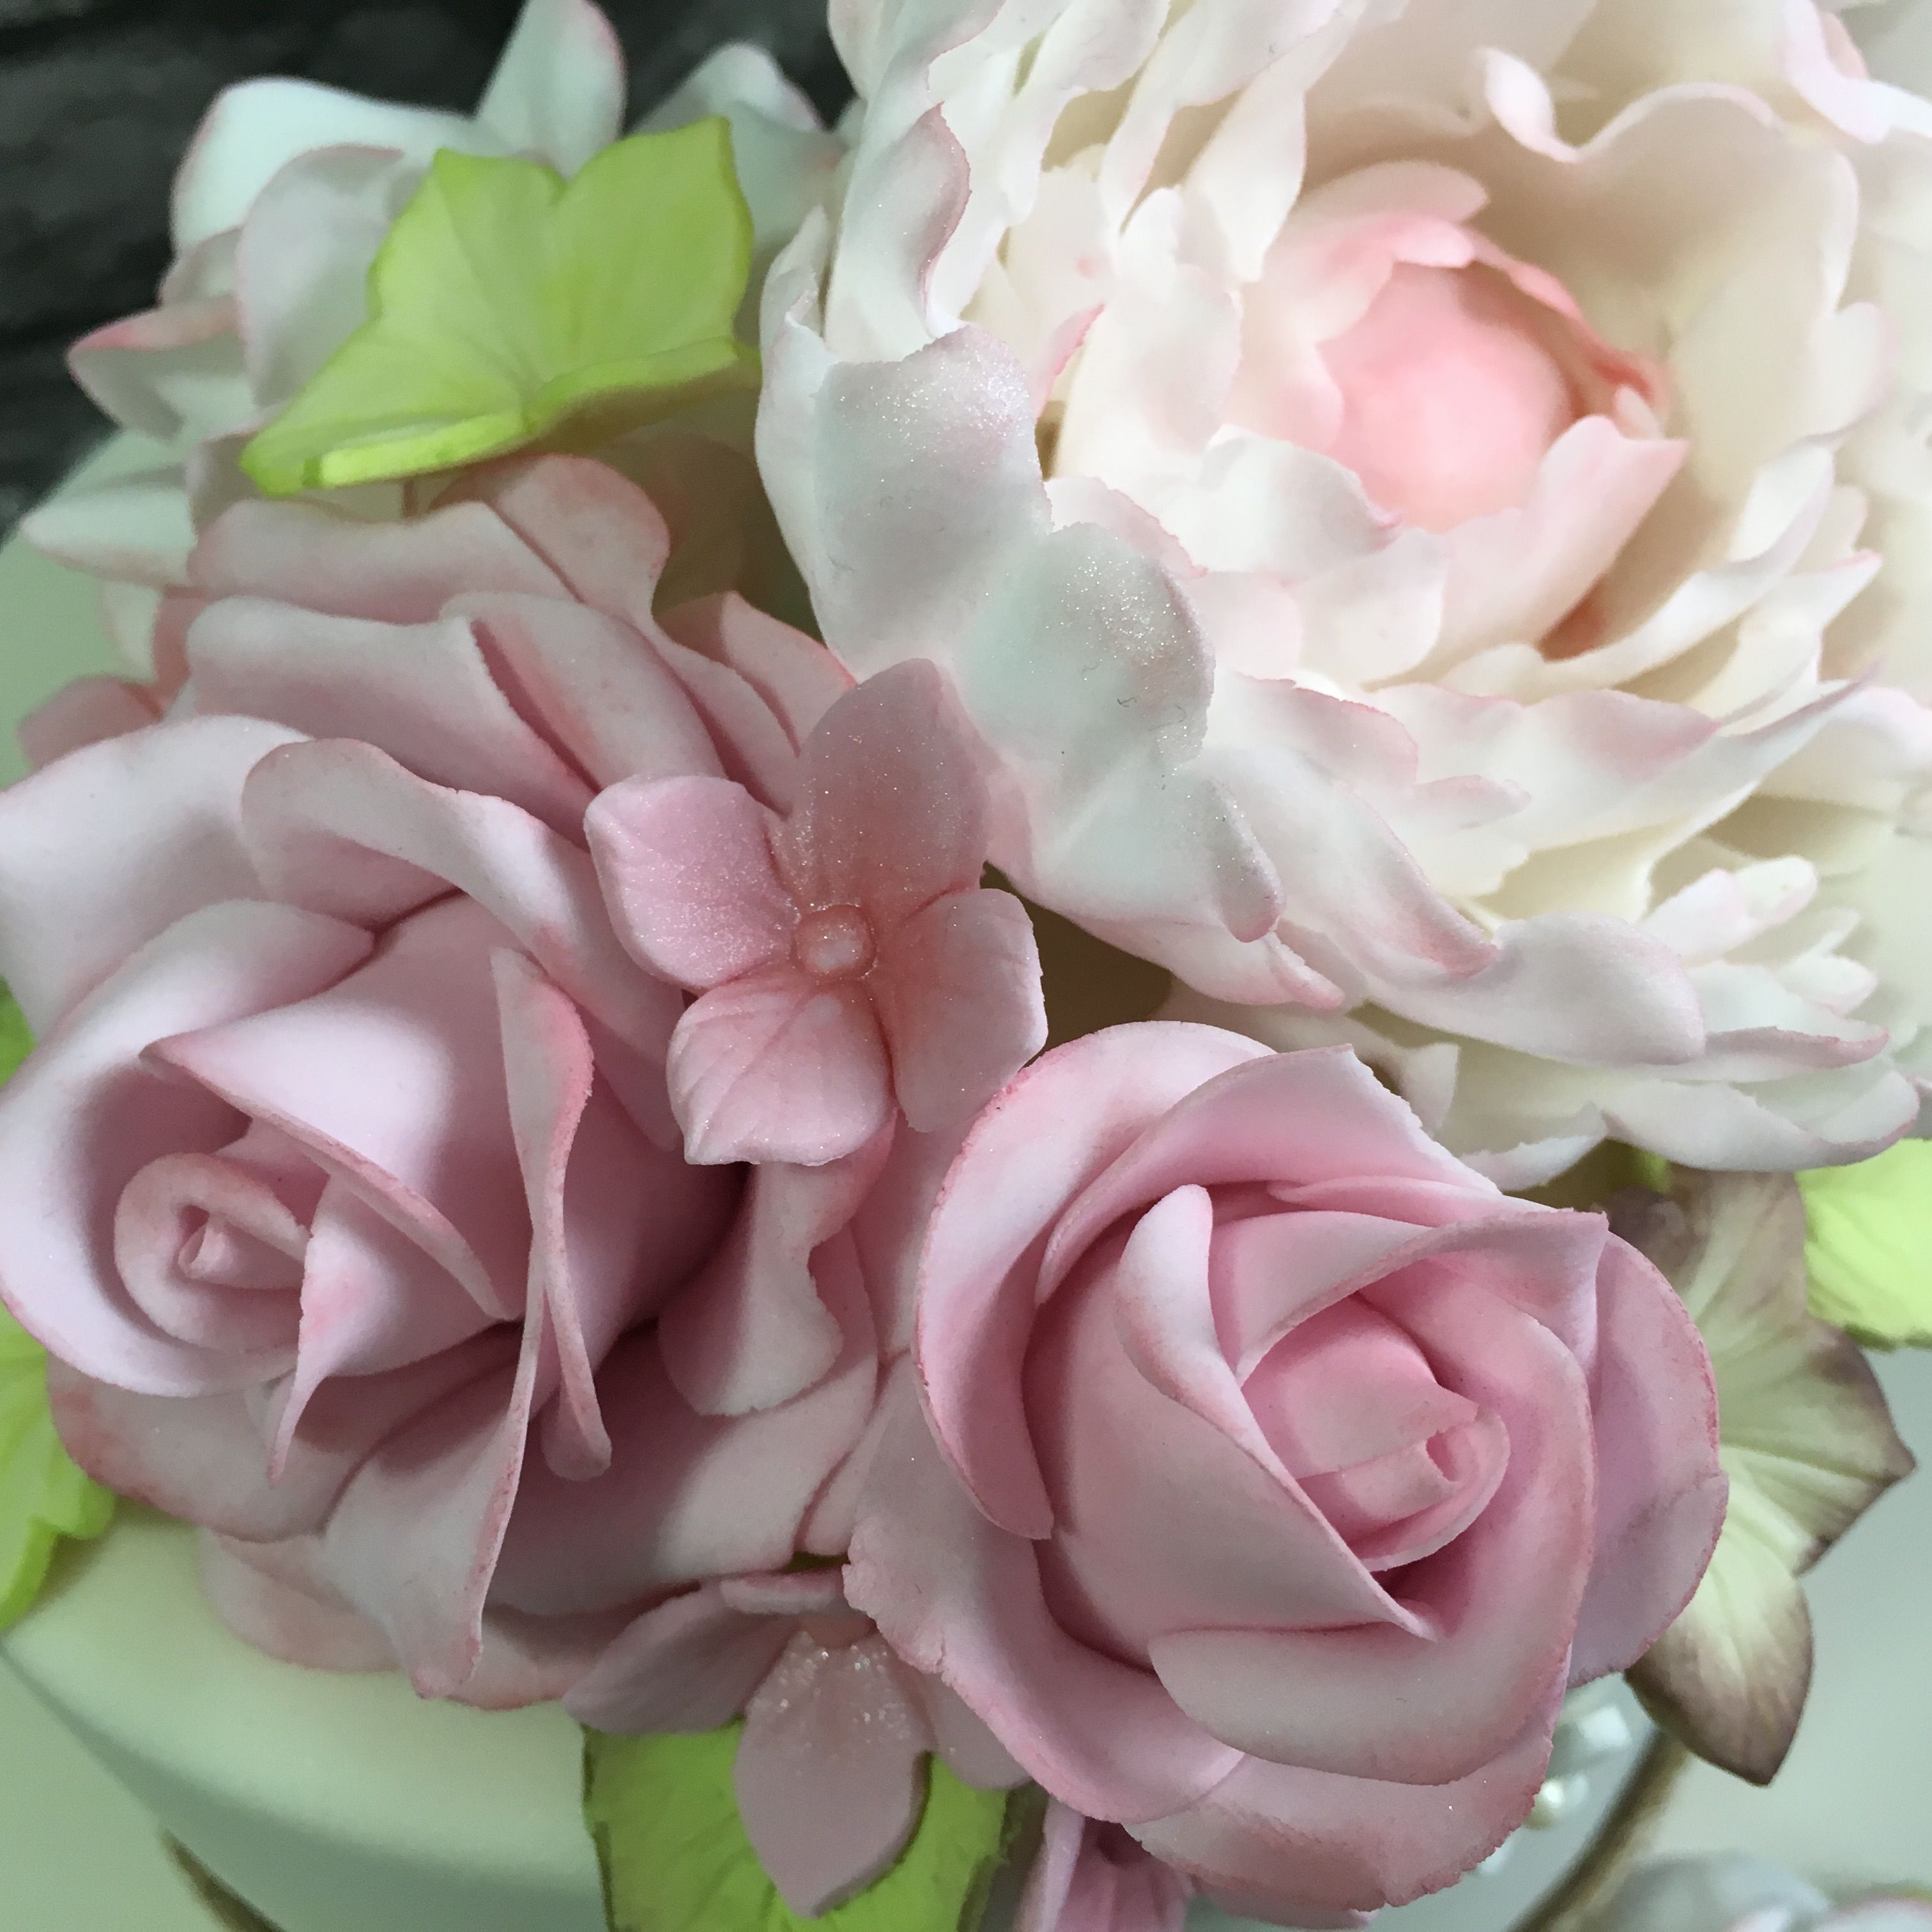 Vintage Wedding Cake Roses and Peony detail https://www.facebook.com/CalsCakeCreations/